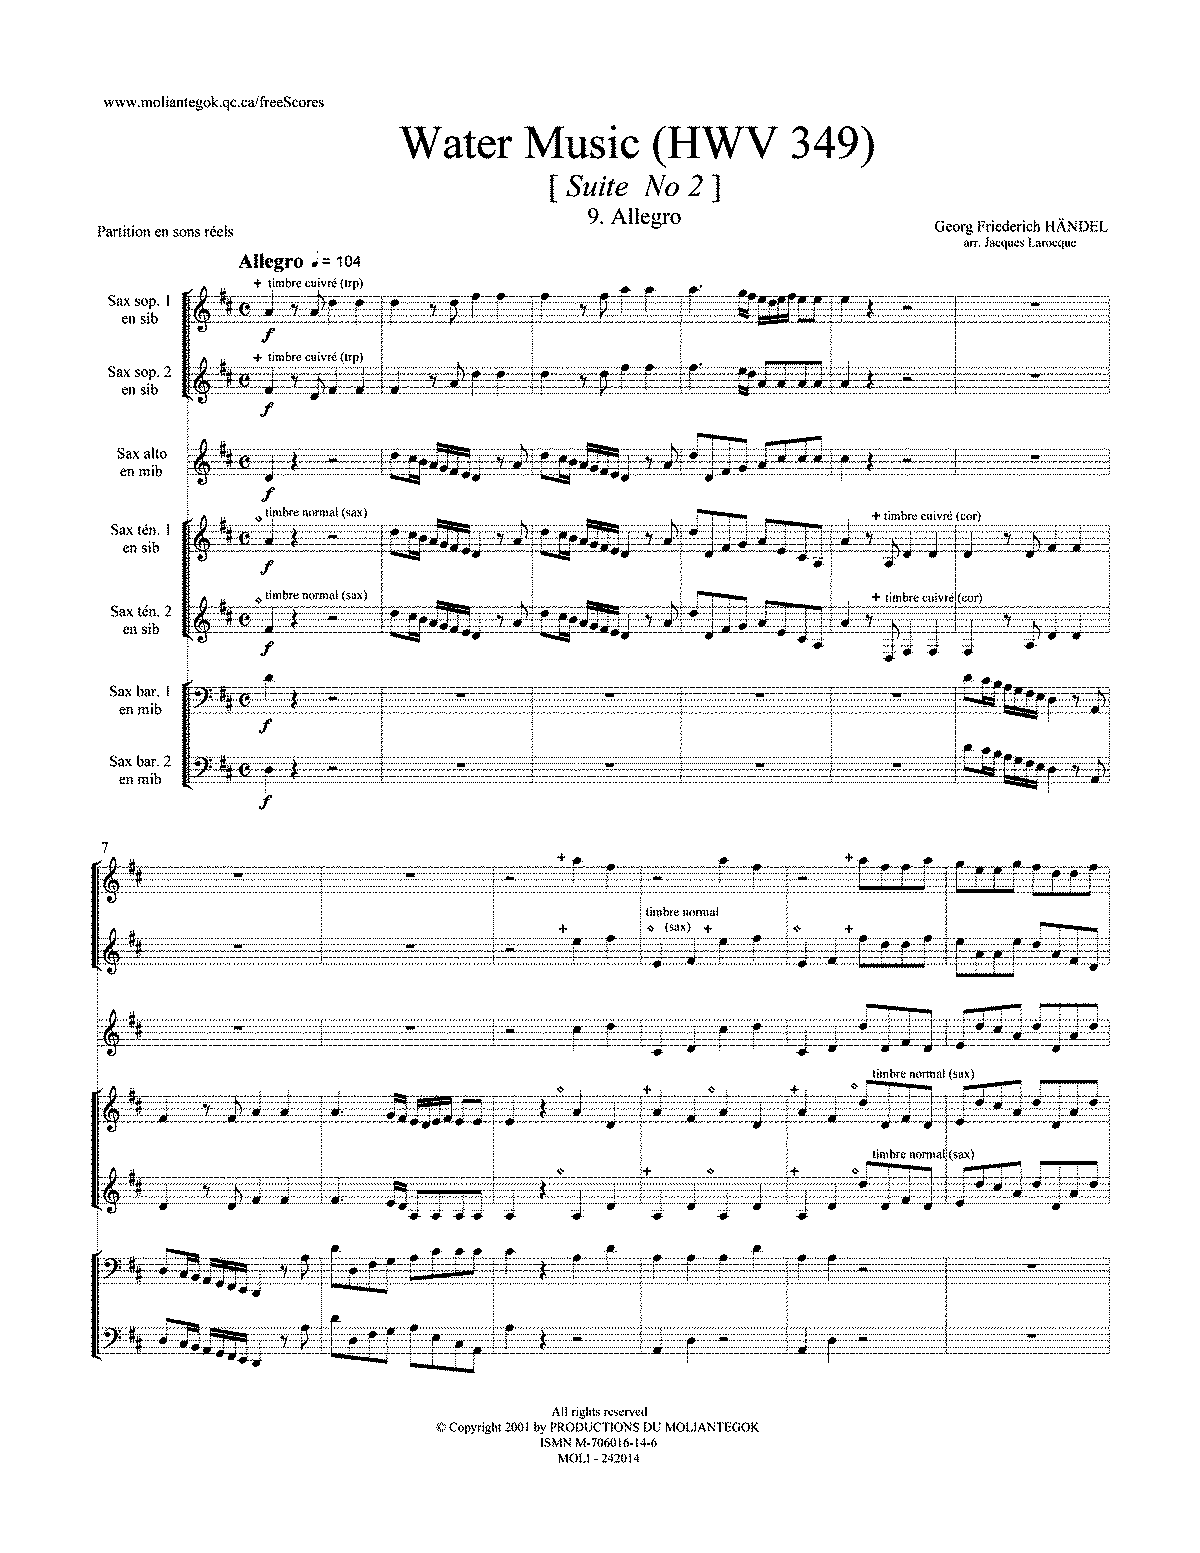 PMLP11283-Water Music-Suite-2-HWV 349 - Compl Score.pdf